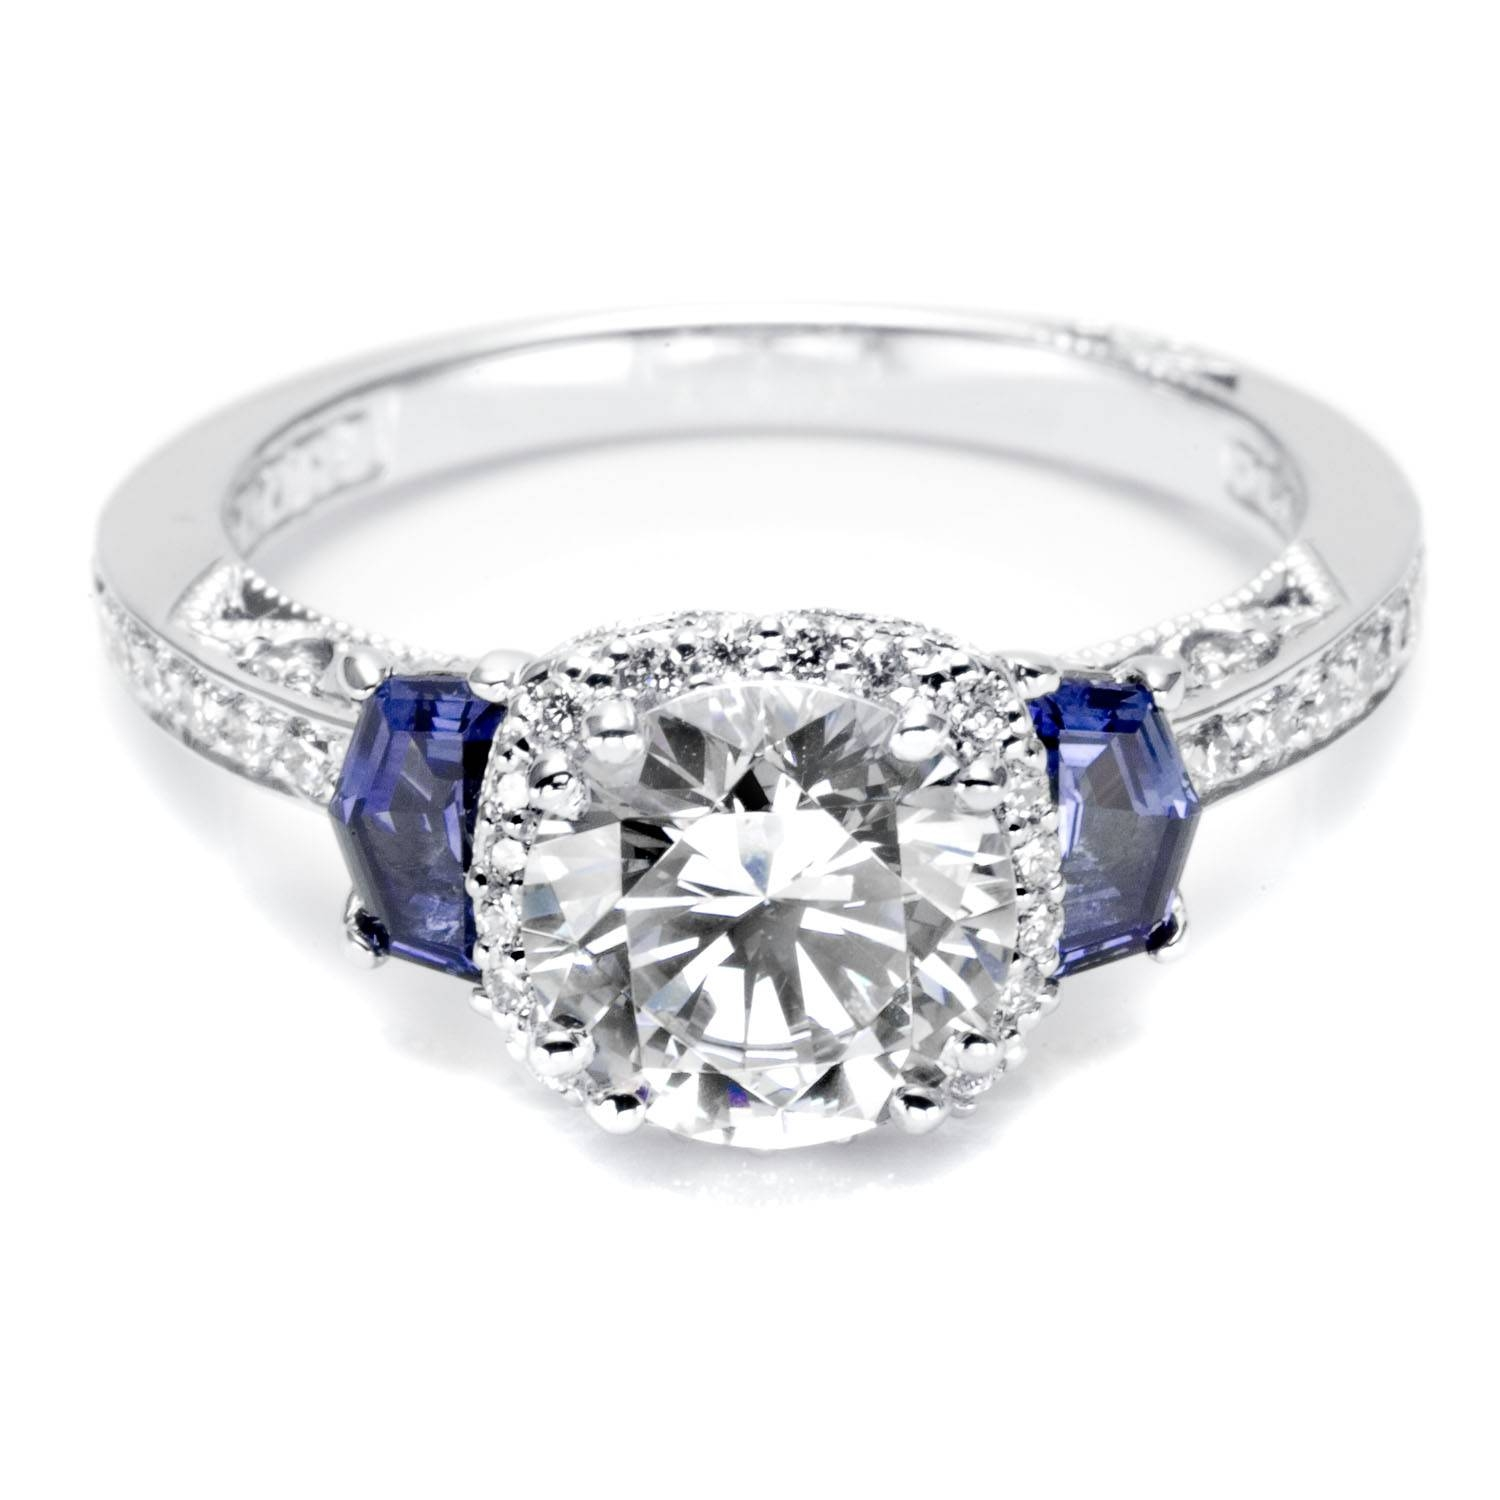 Engagement Rings : Awesome Diamond Engagement Rings With Sapphires With Regard To Wedding Rings With Diamonds And Sapphires (View 3 of 15)